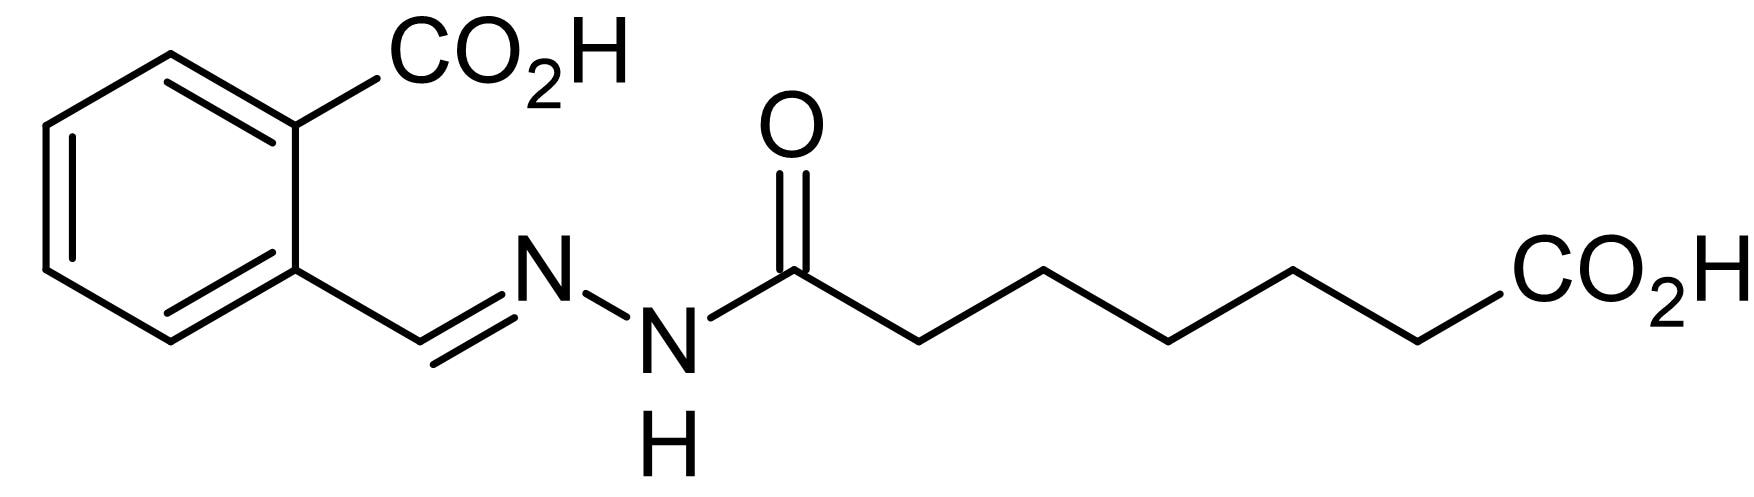 Chemical Structure - IDE 1, endoderm formation inducer (ab145222)